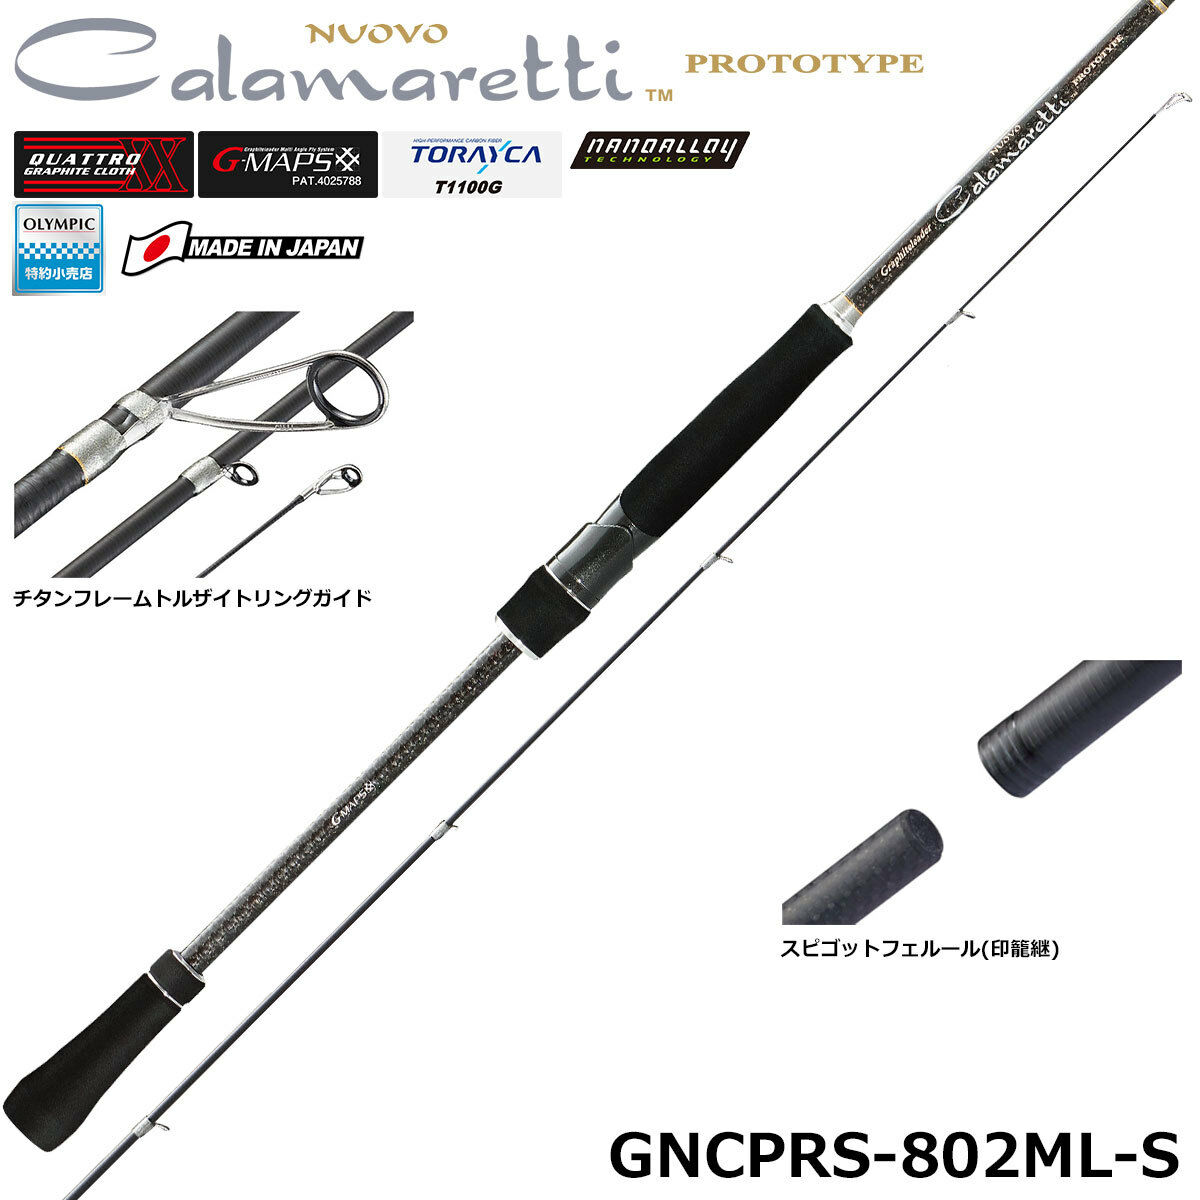 OLYMPIC 18 Nuovo CALAMARETTI prototype GNCPRS-832M squid fishing rod F/S NEW